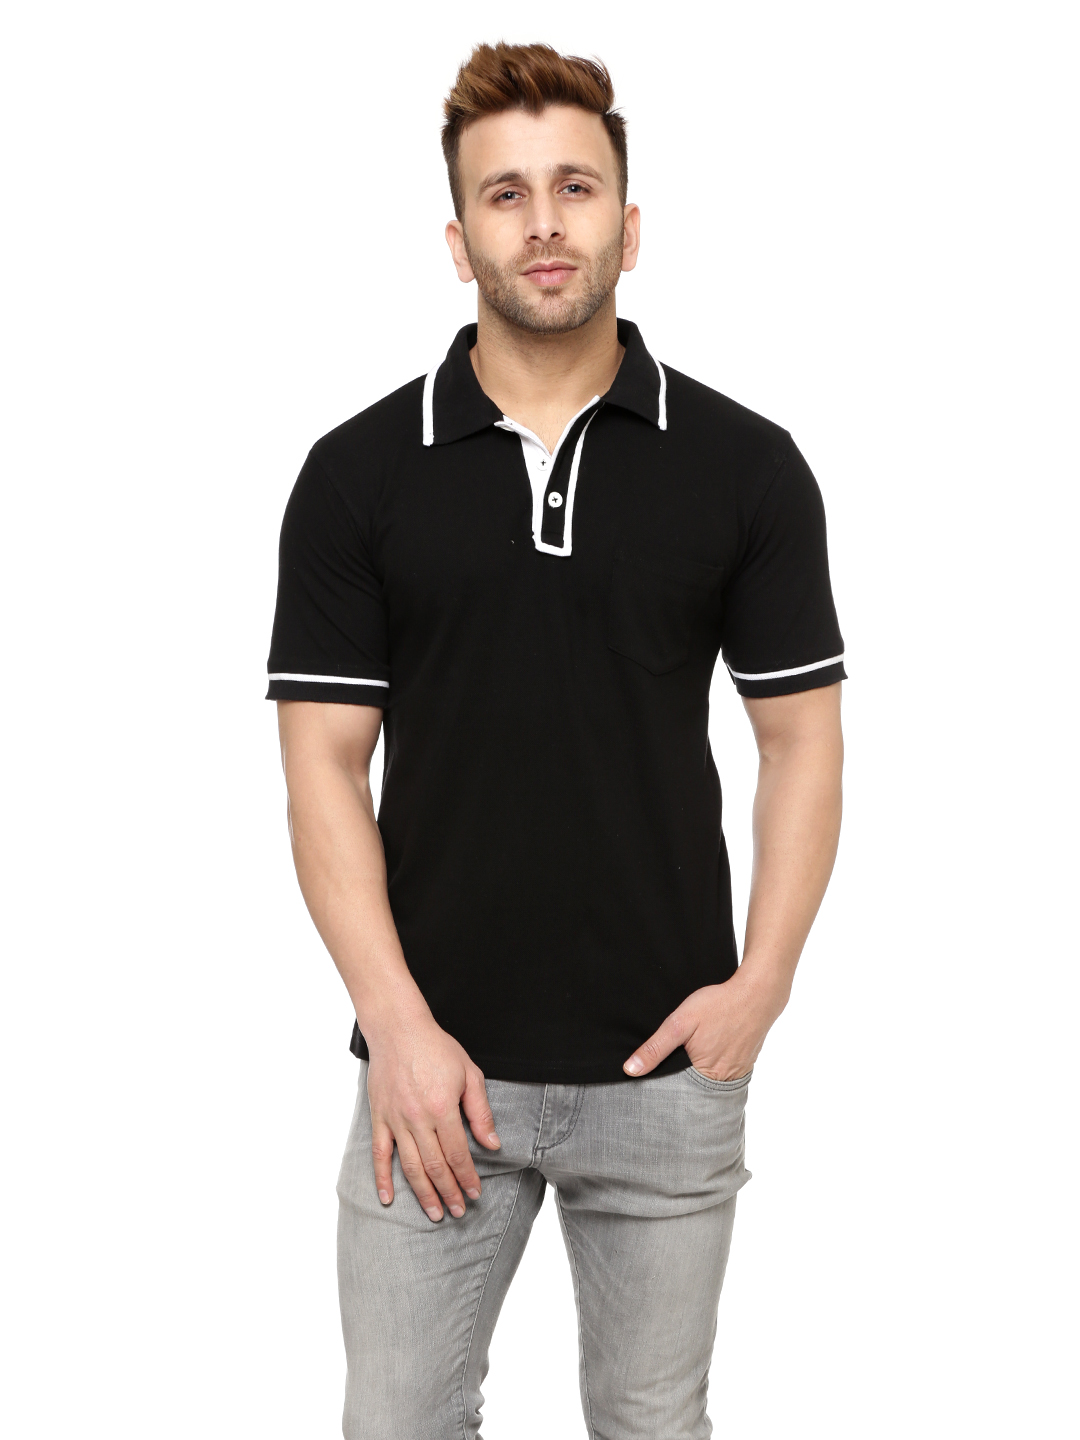 Gritstones Black/White Half Sleeves Cotton Polo T-Shirt